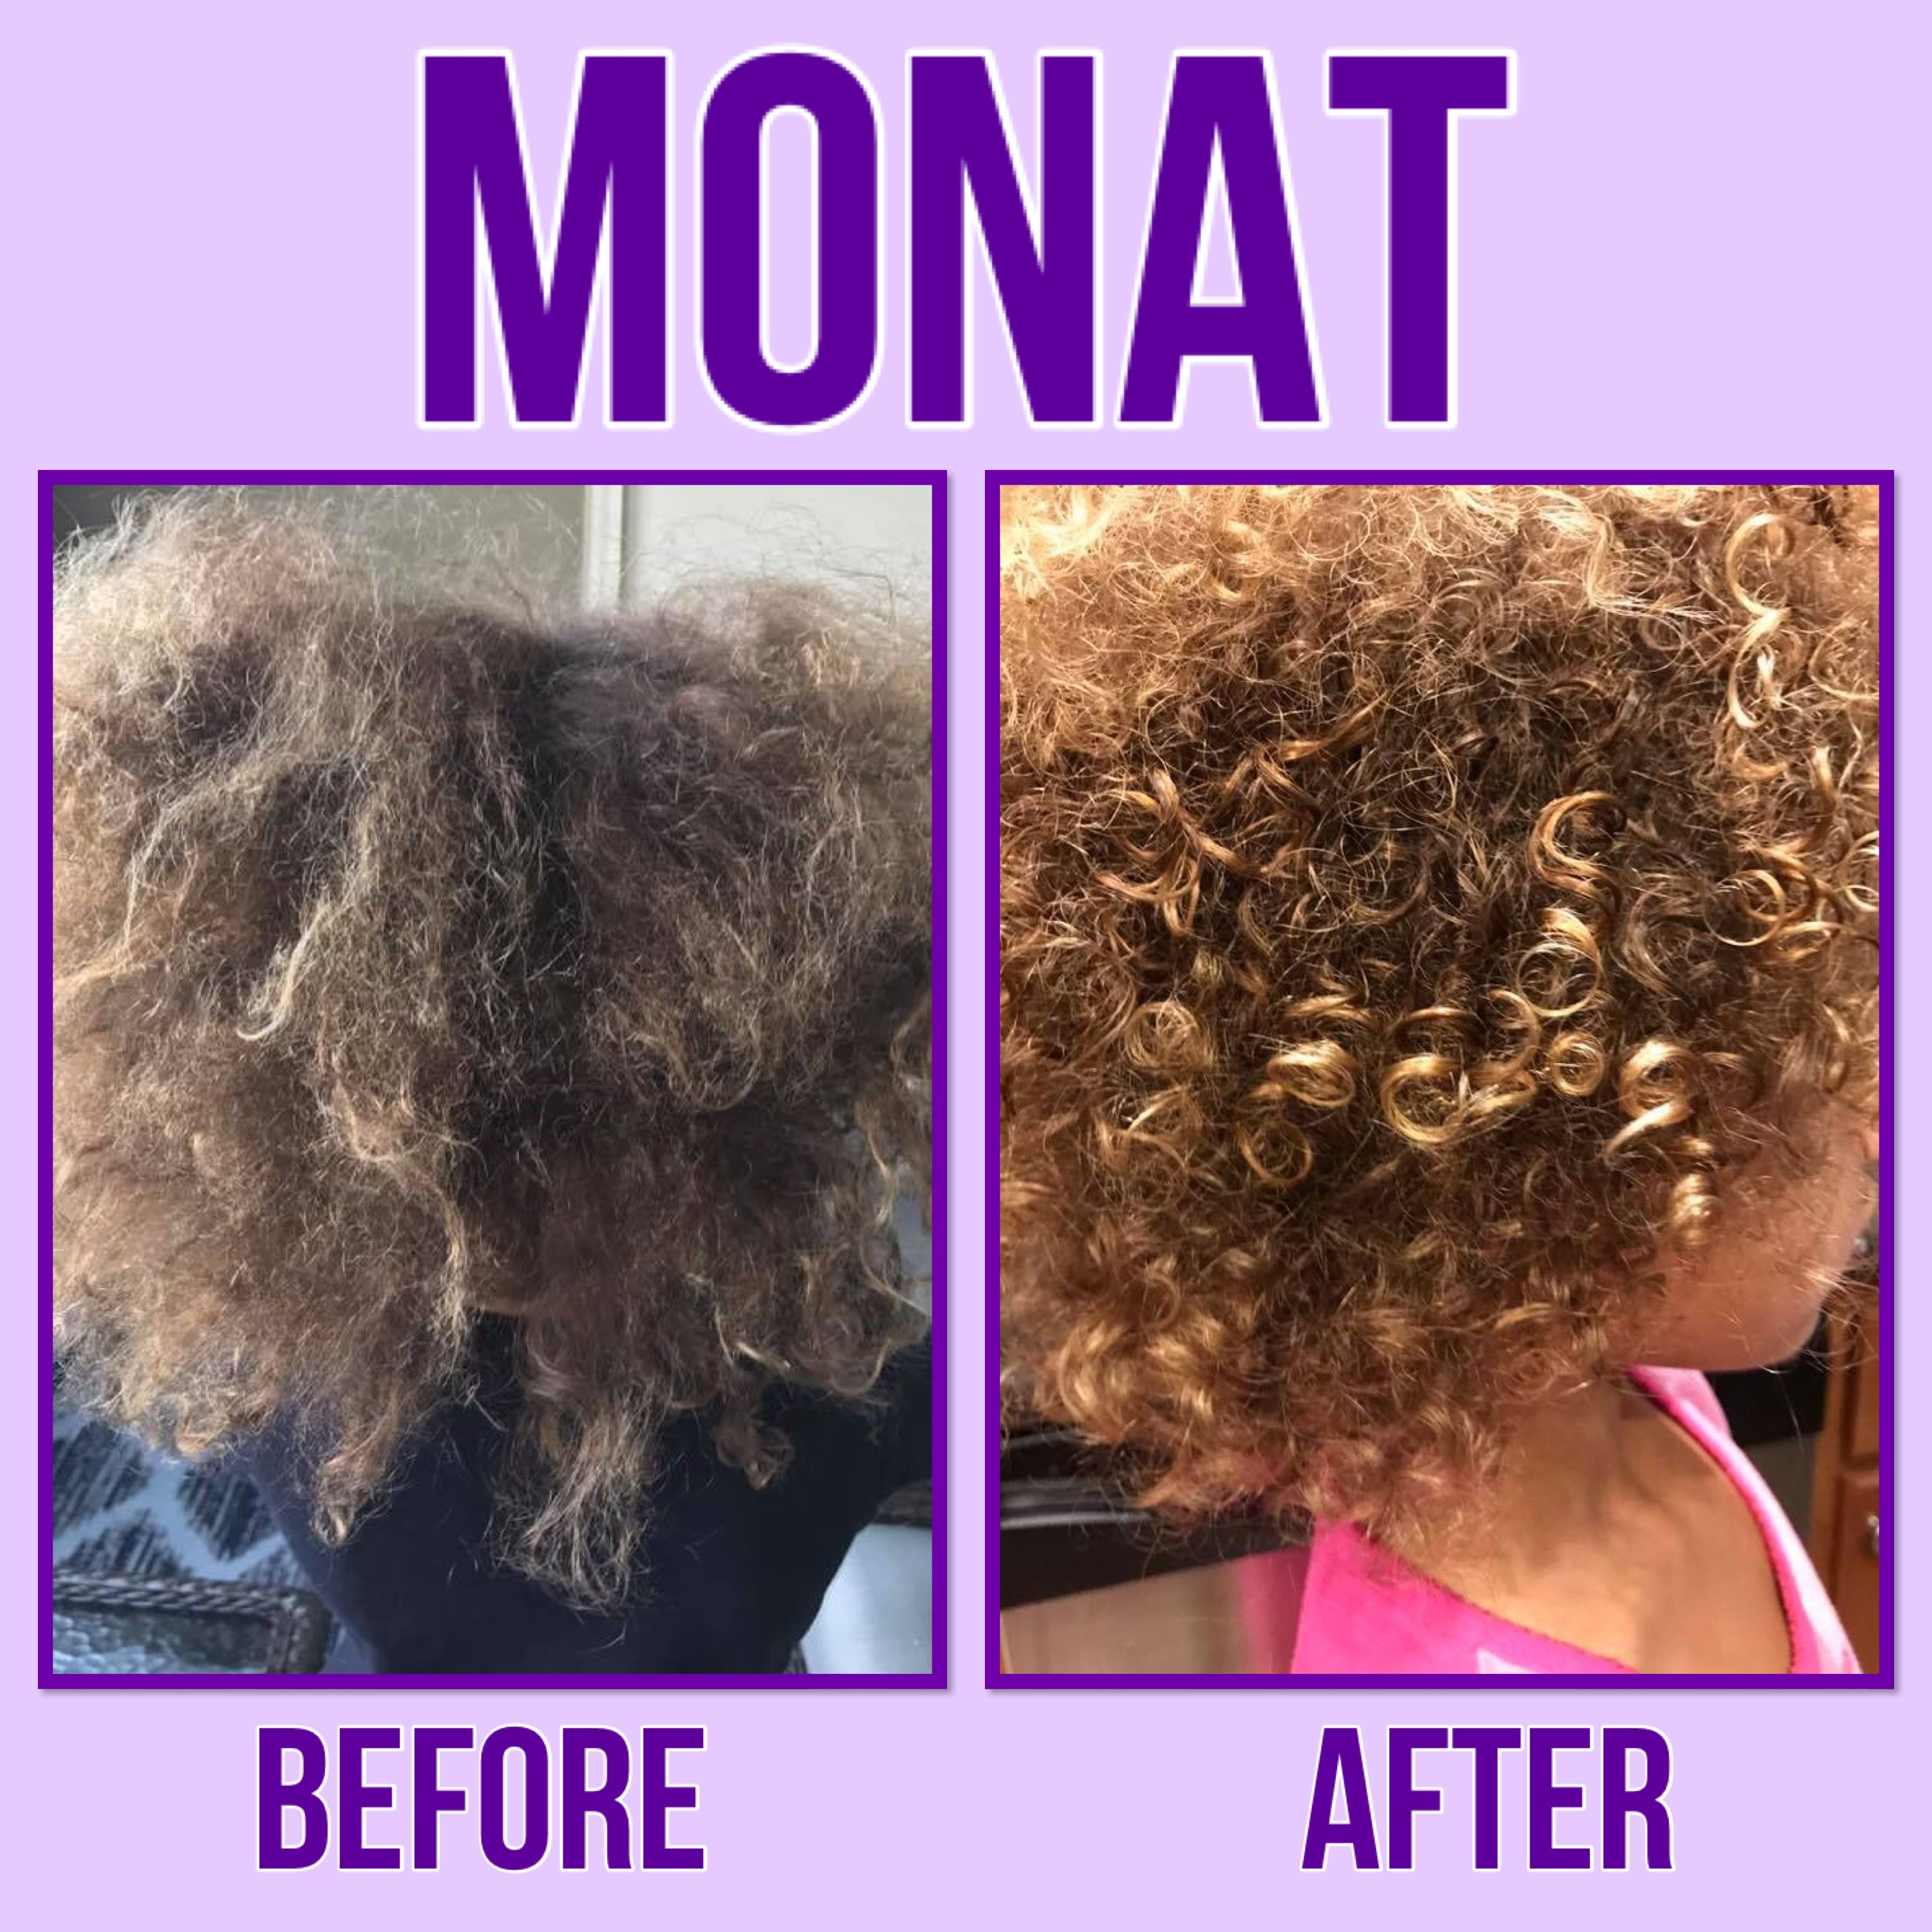 Monat Testimonial Holly S Experience My Daughters Hair Before And After I Usually Can T Get A Brush Through It A Monat Monat Hair Monat Before And After